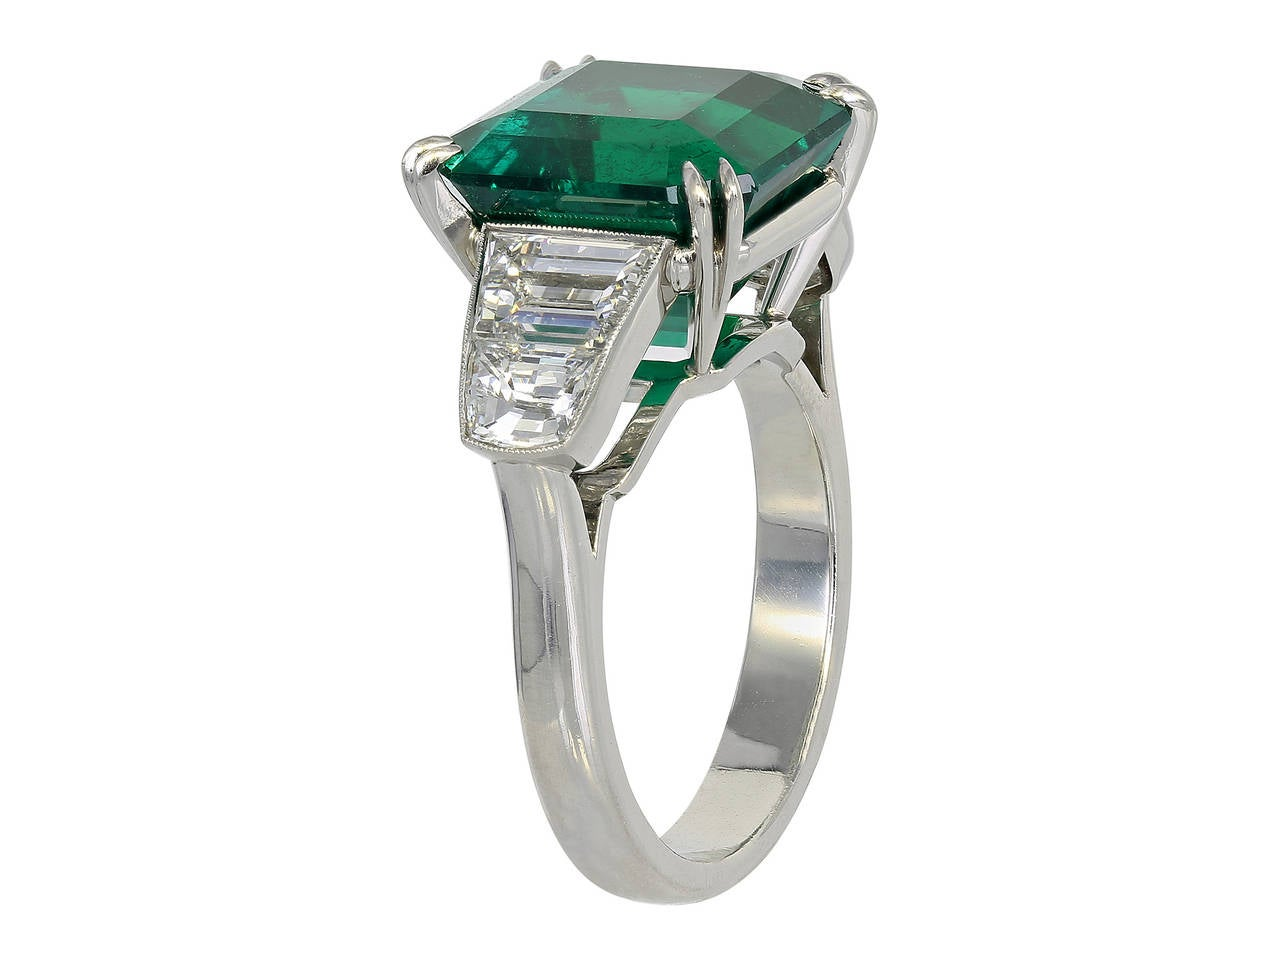 Emerald Cut 7.28 Carat Colombian Emerald Diamond Ring For Sale